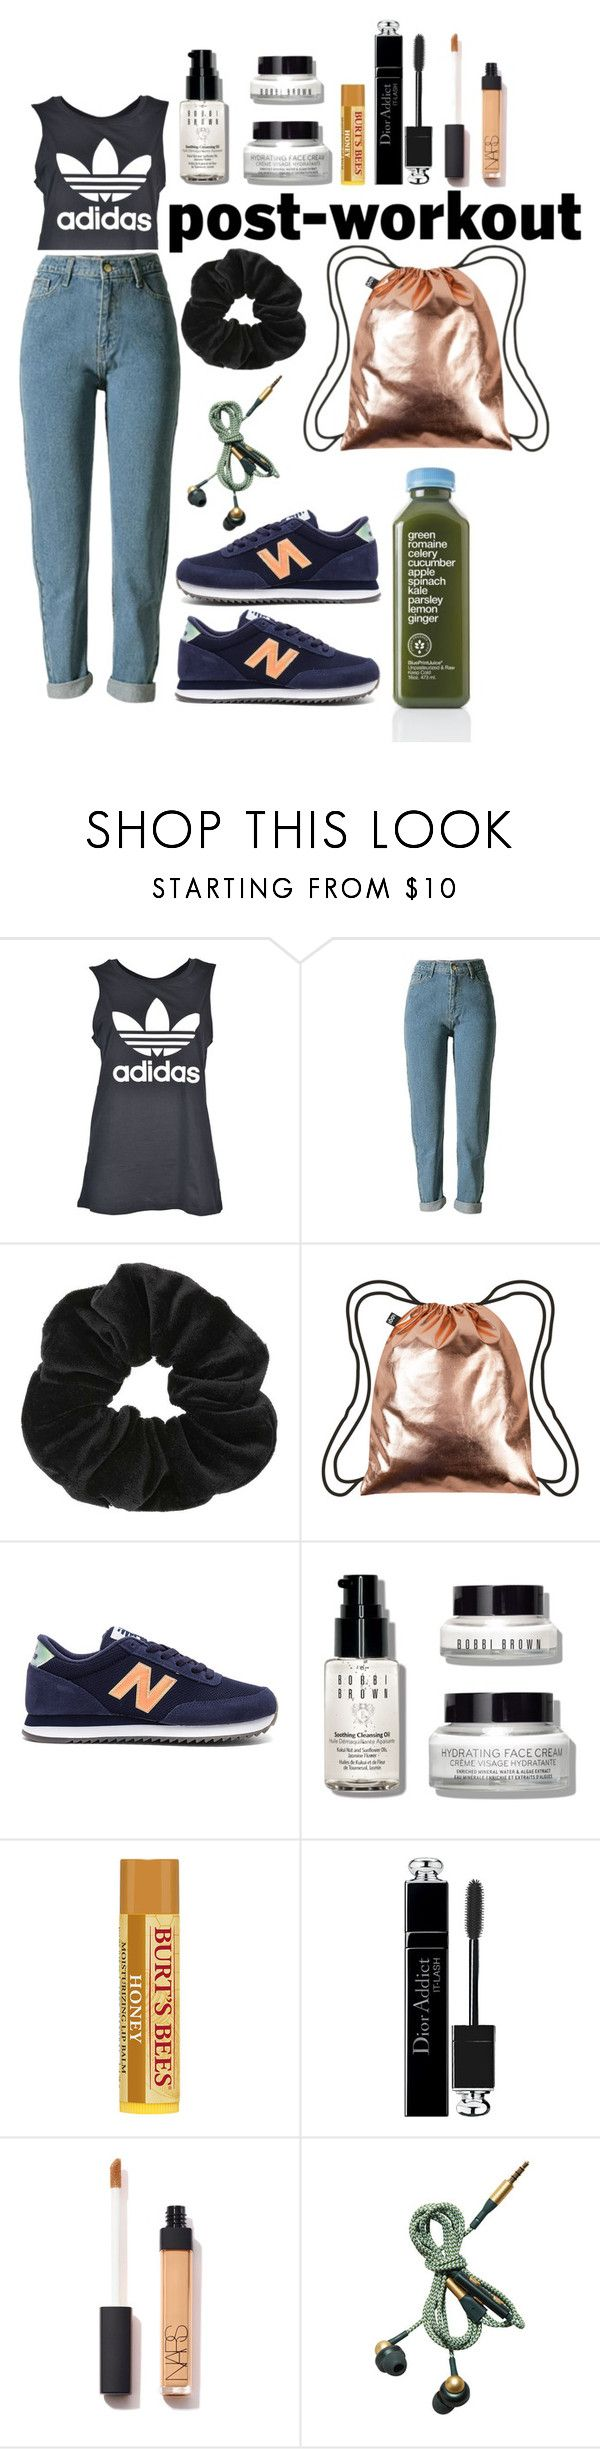 """oh look my green smoothie!"" by nover on Polyvore featuring beauty, adidas, Miss Selfridge, LOQI, New Balance, Bobbi Brown Cosmetics, Christian Dior and Kreafunk"